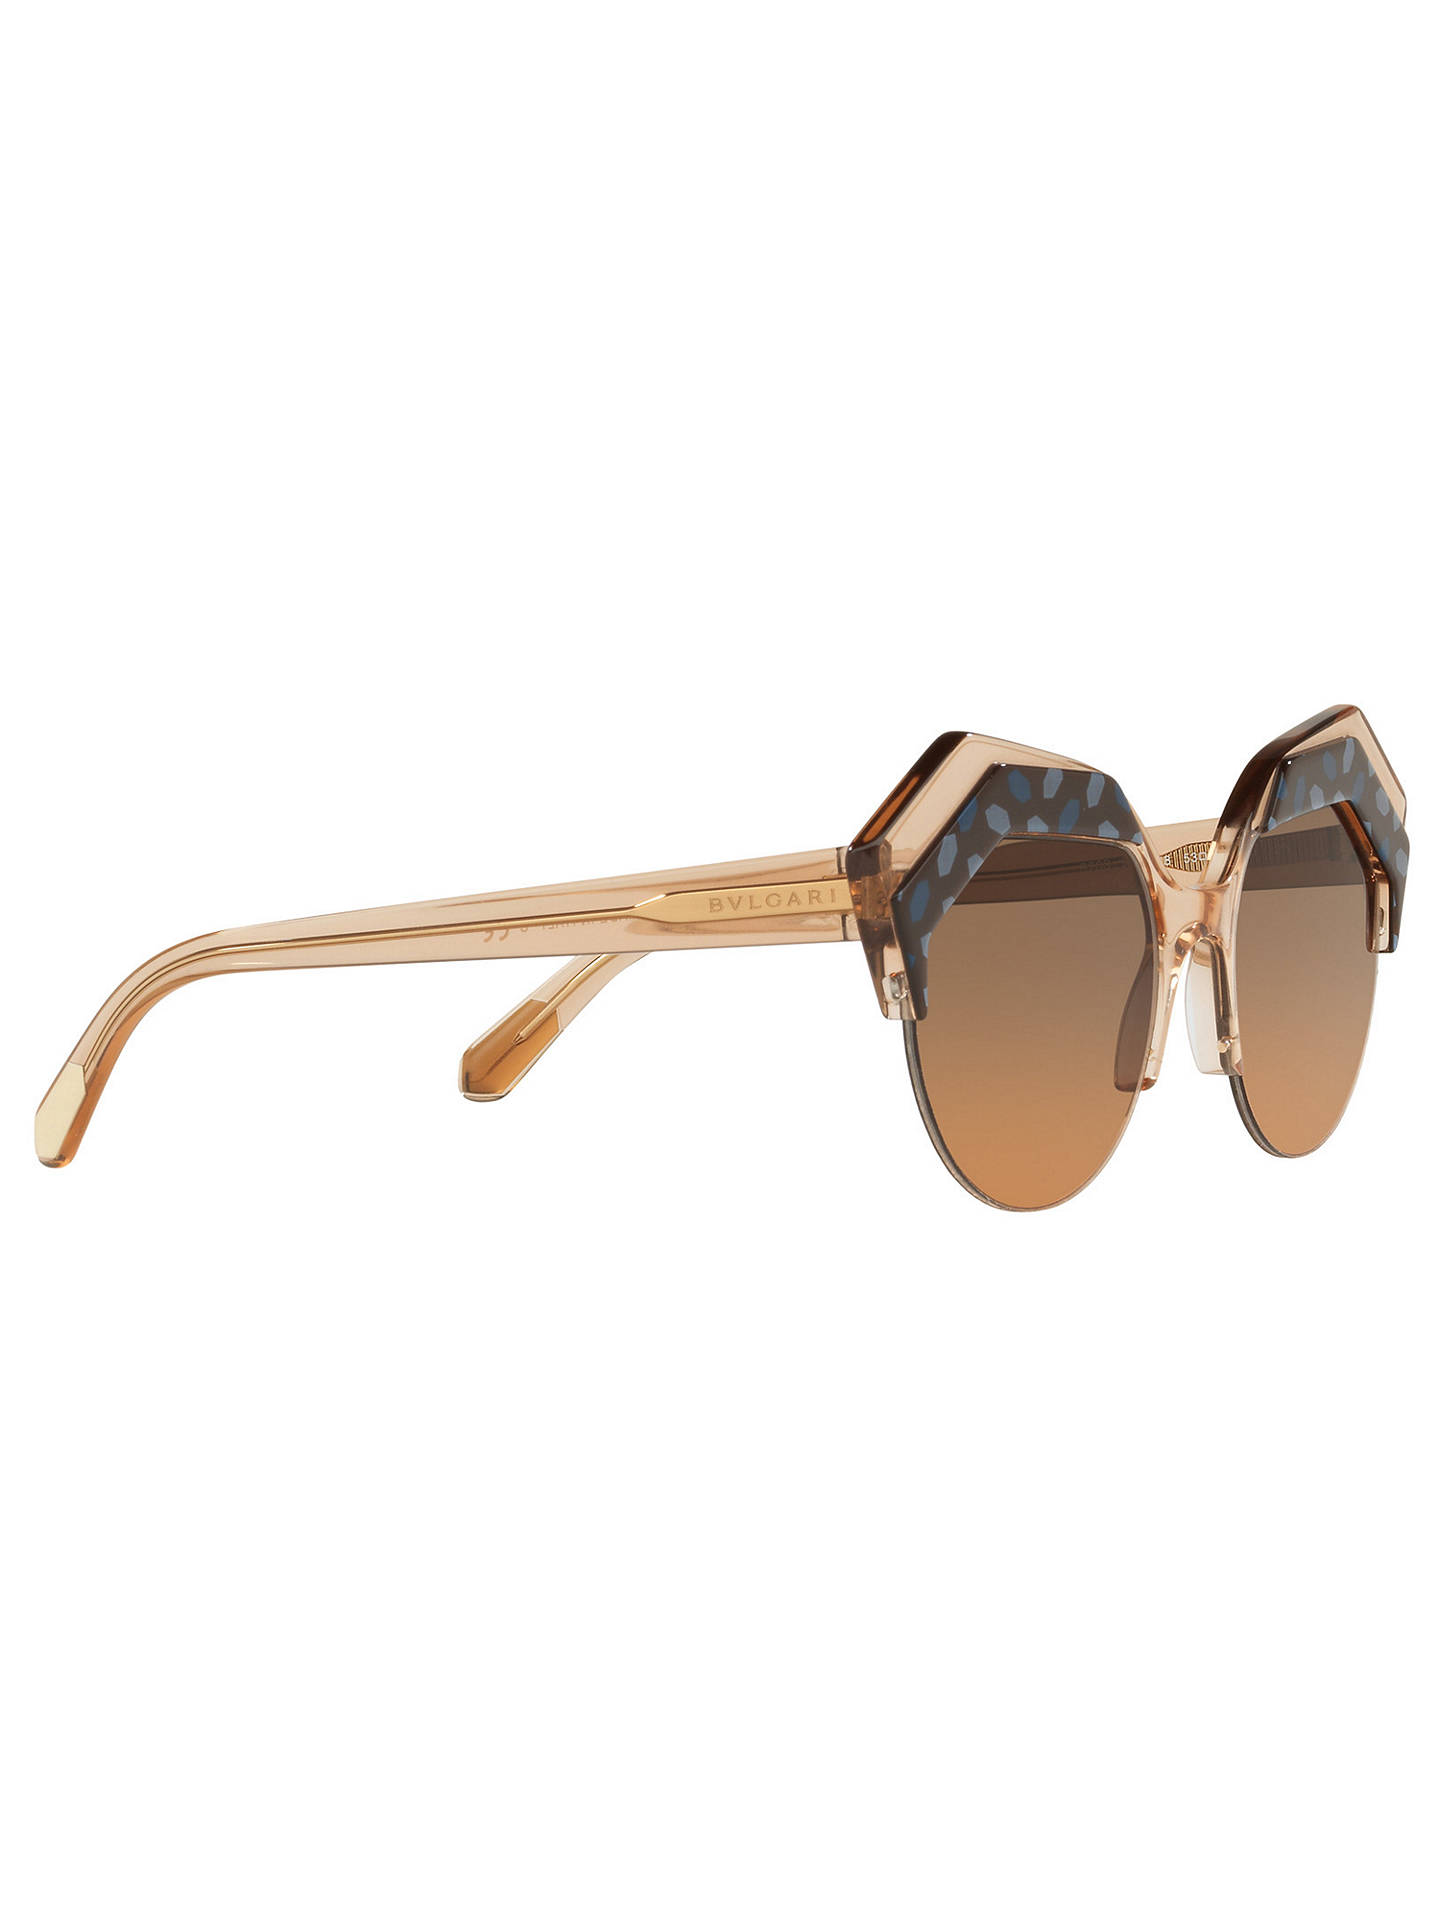 BuyBVLGARI BV8203 Women's Embellished Round Sunglasses, Camel/Brown Gradient Online at johnlewis.com